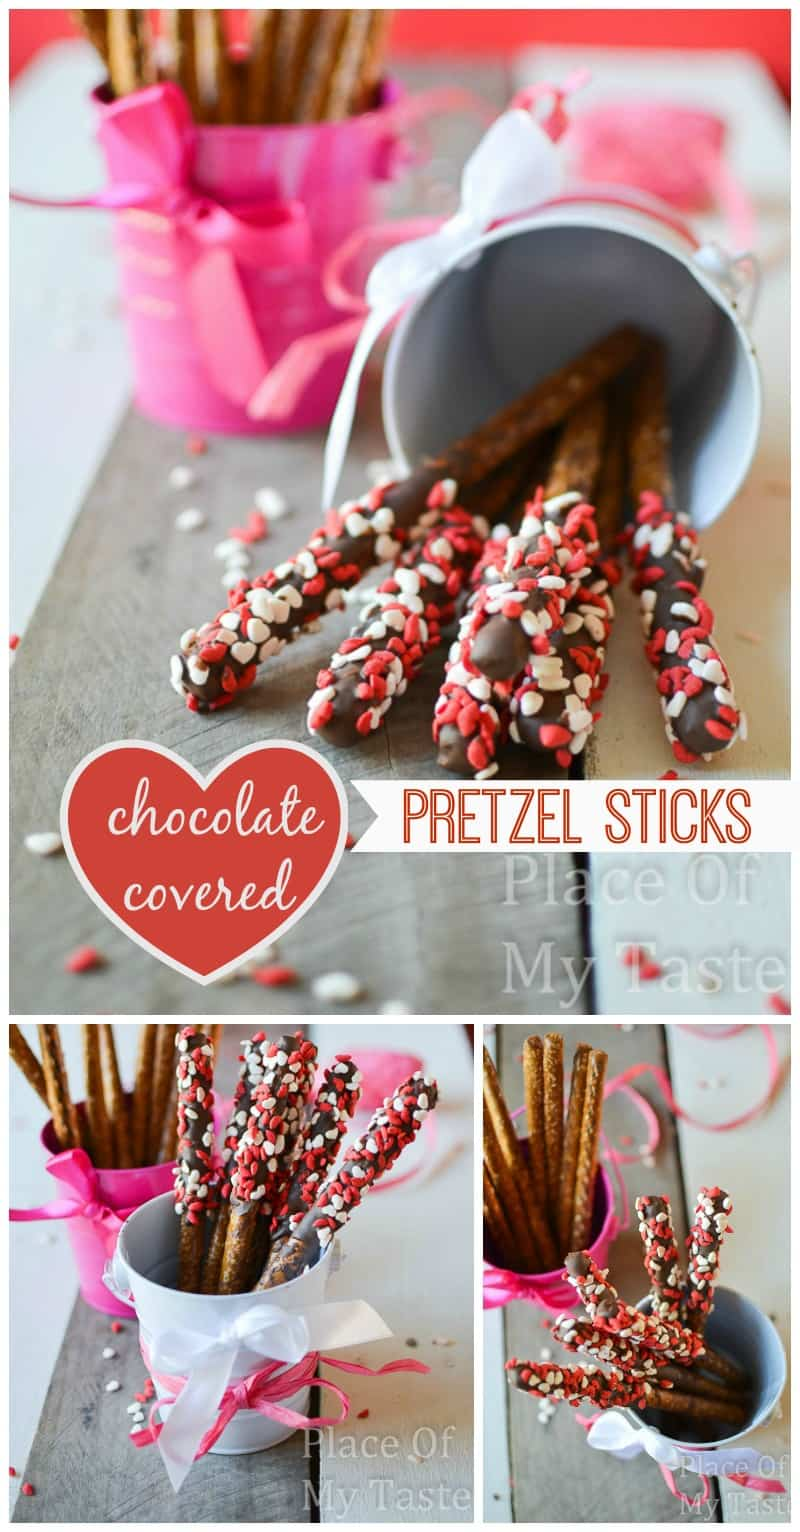 Chocolate covered pretzel sticks @placeofmytaste.com